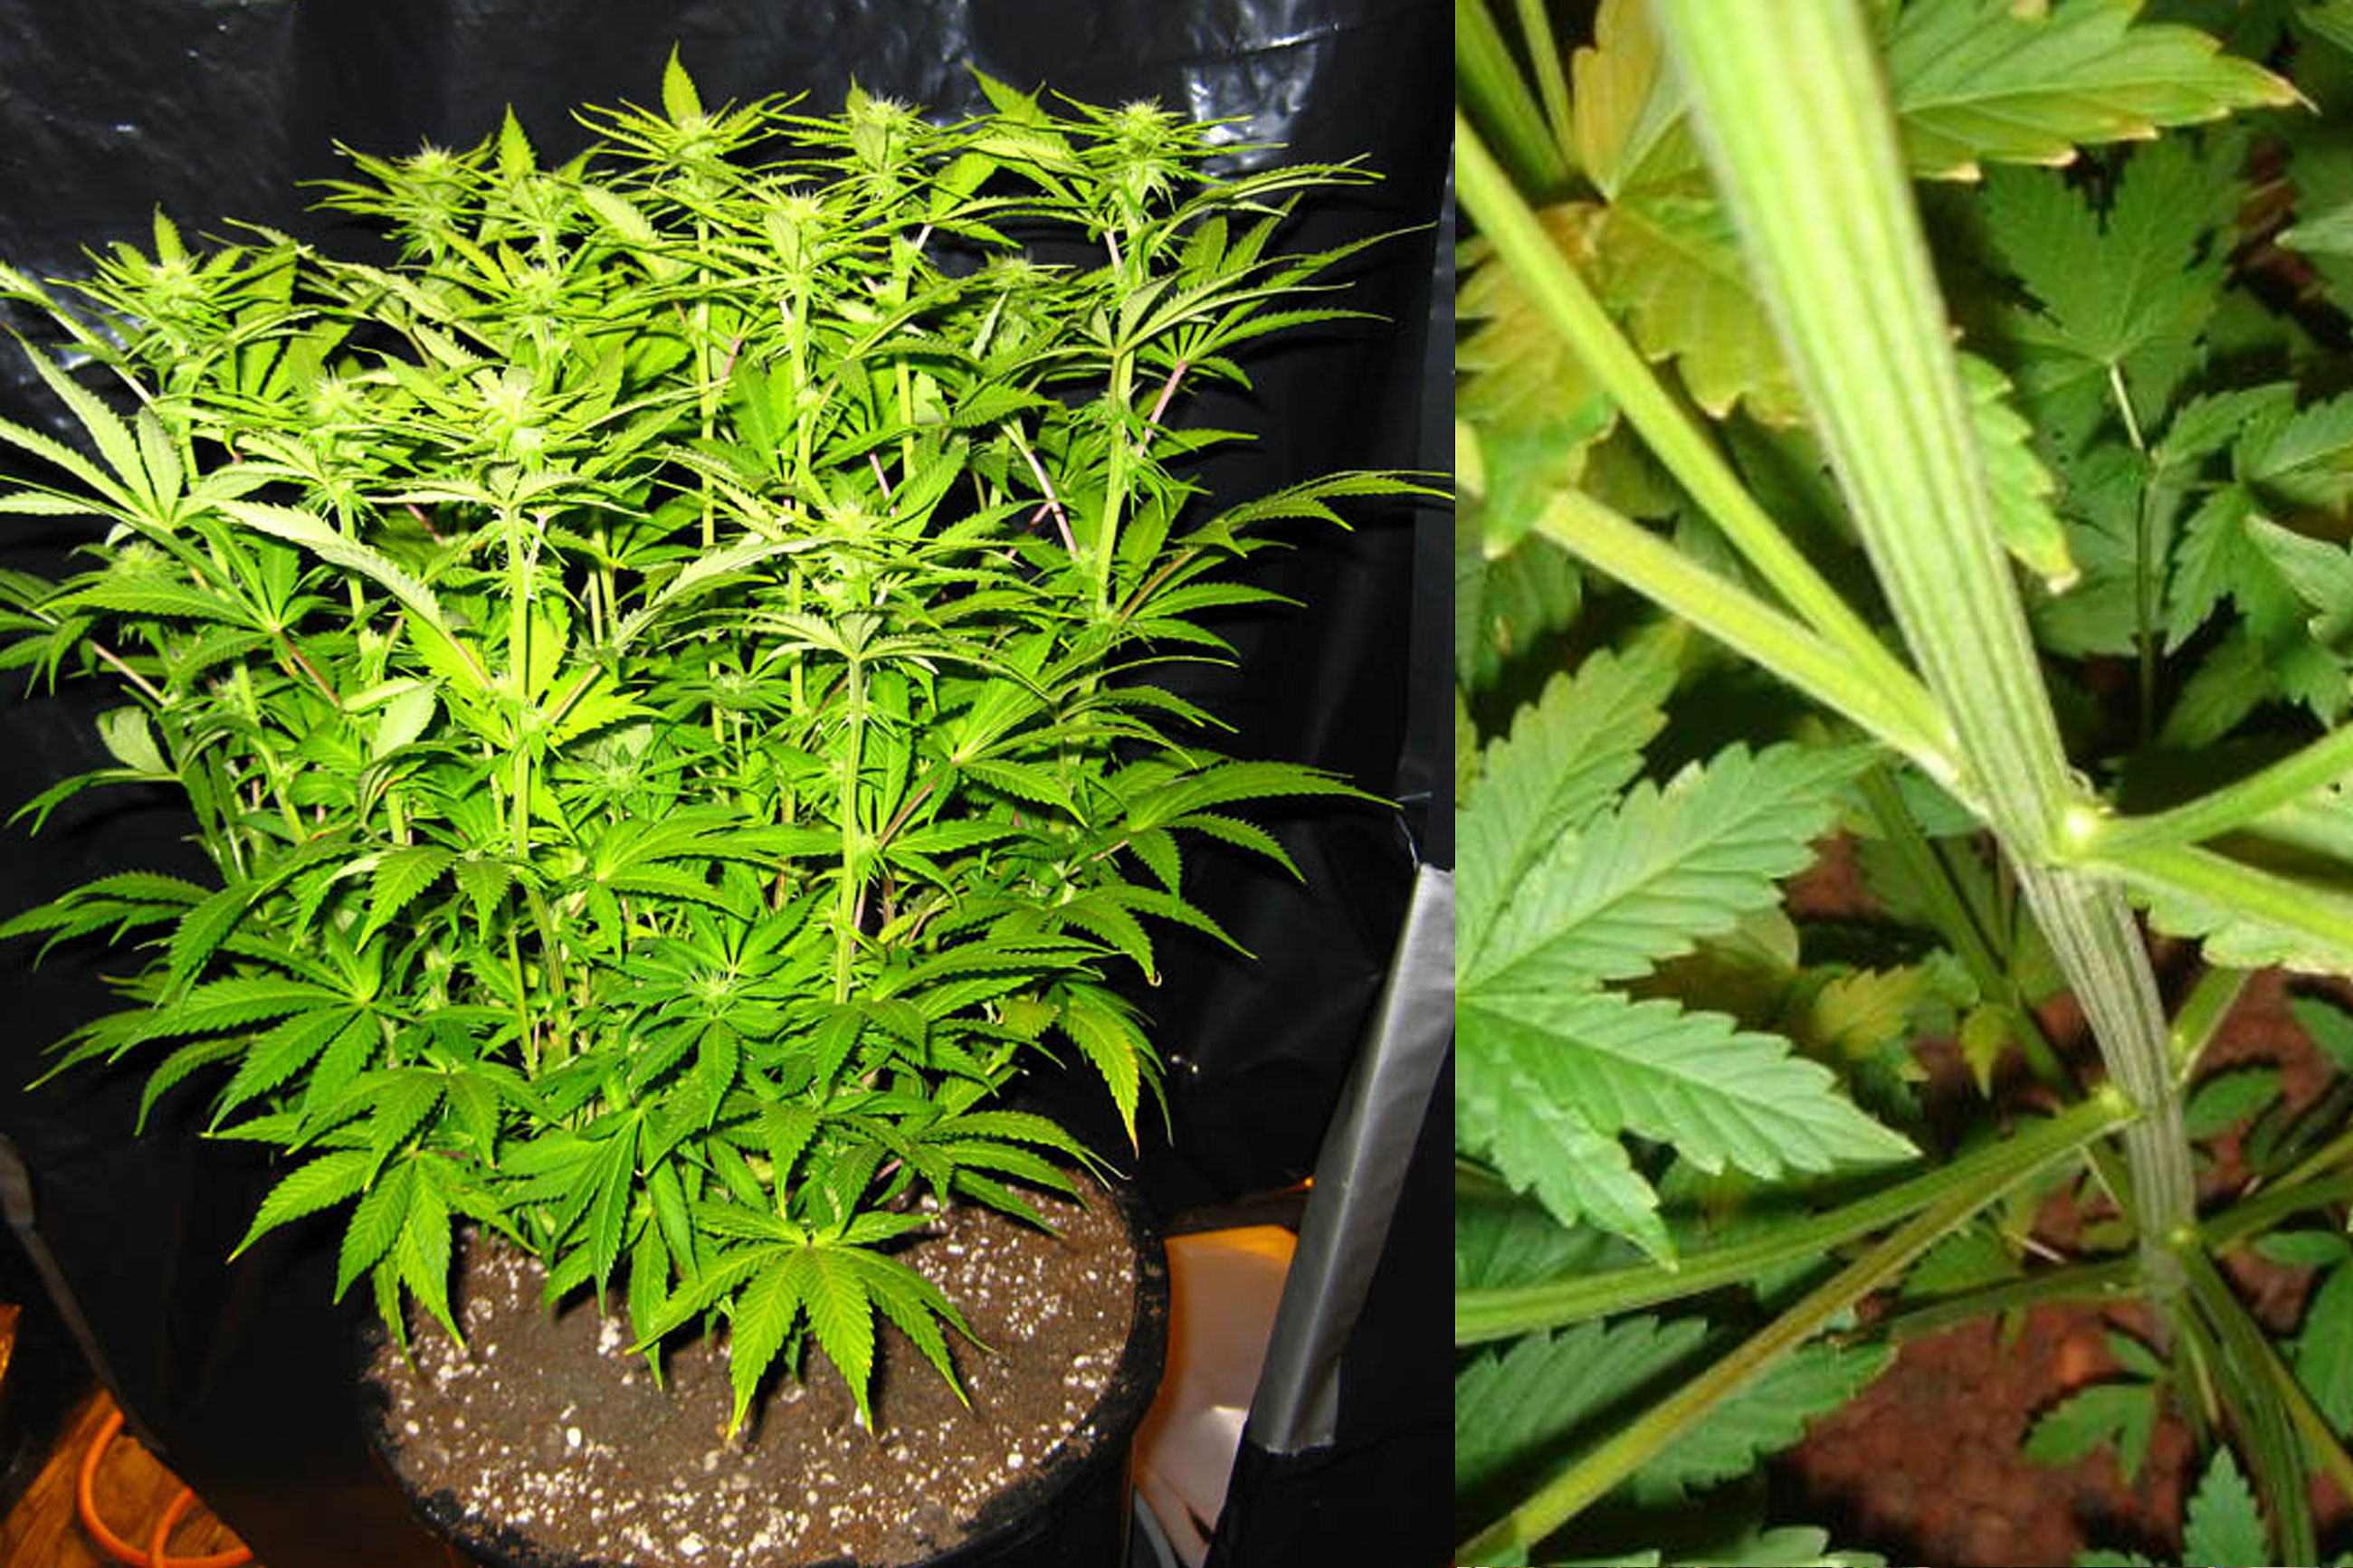 https://sensiseeds.com/blog/wp-content/uploads/2015/04/Top-10-tips-to-maximize-your-cannabis-grow-space-stretching-3.jpg